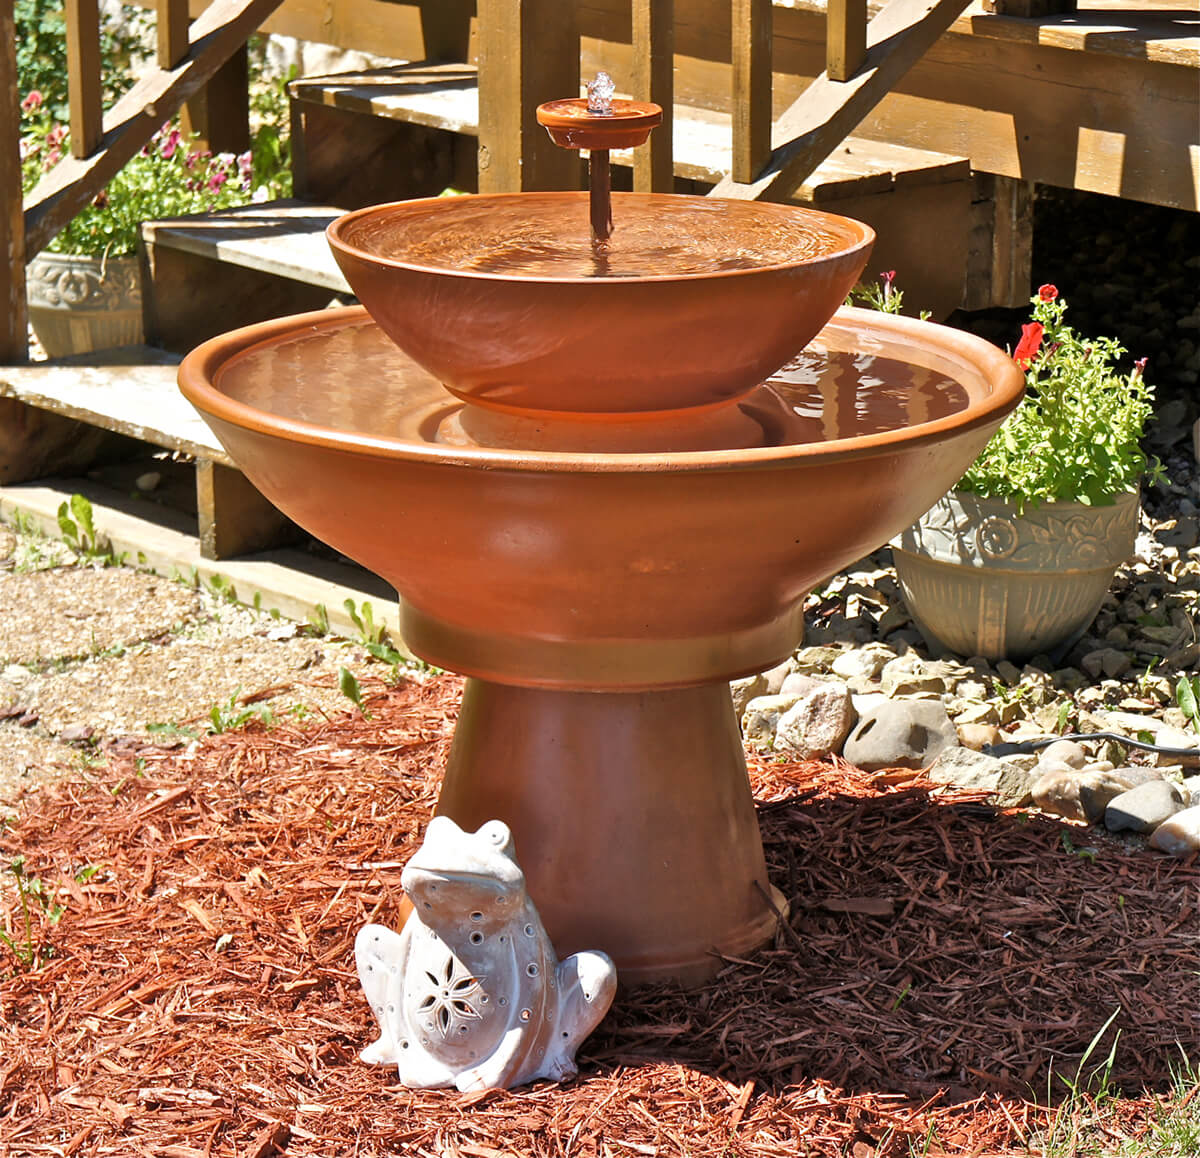 Use Clay Flower Pots in a Fountain